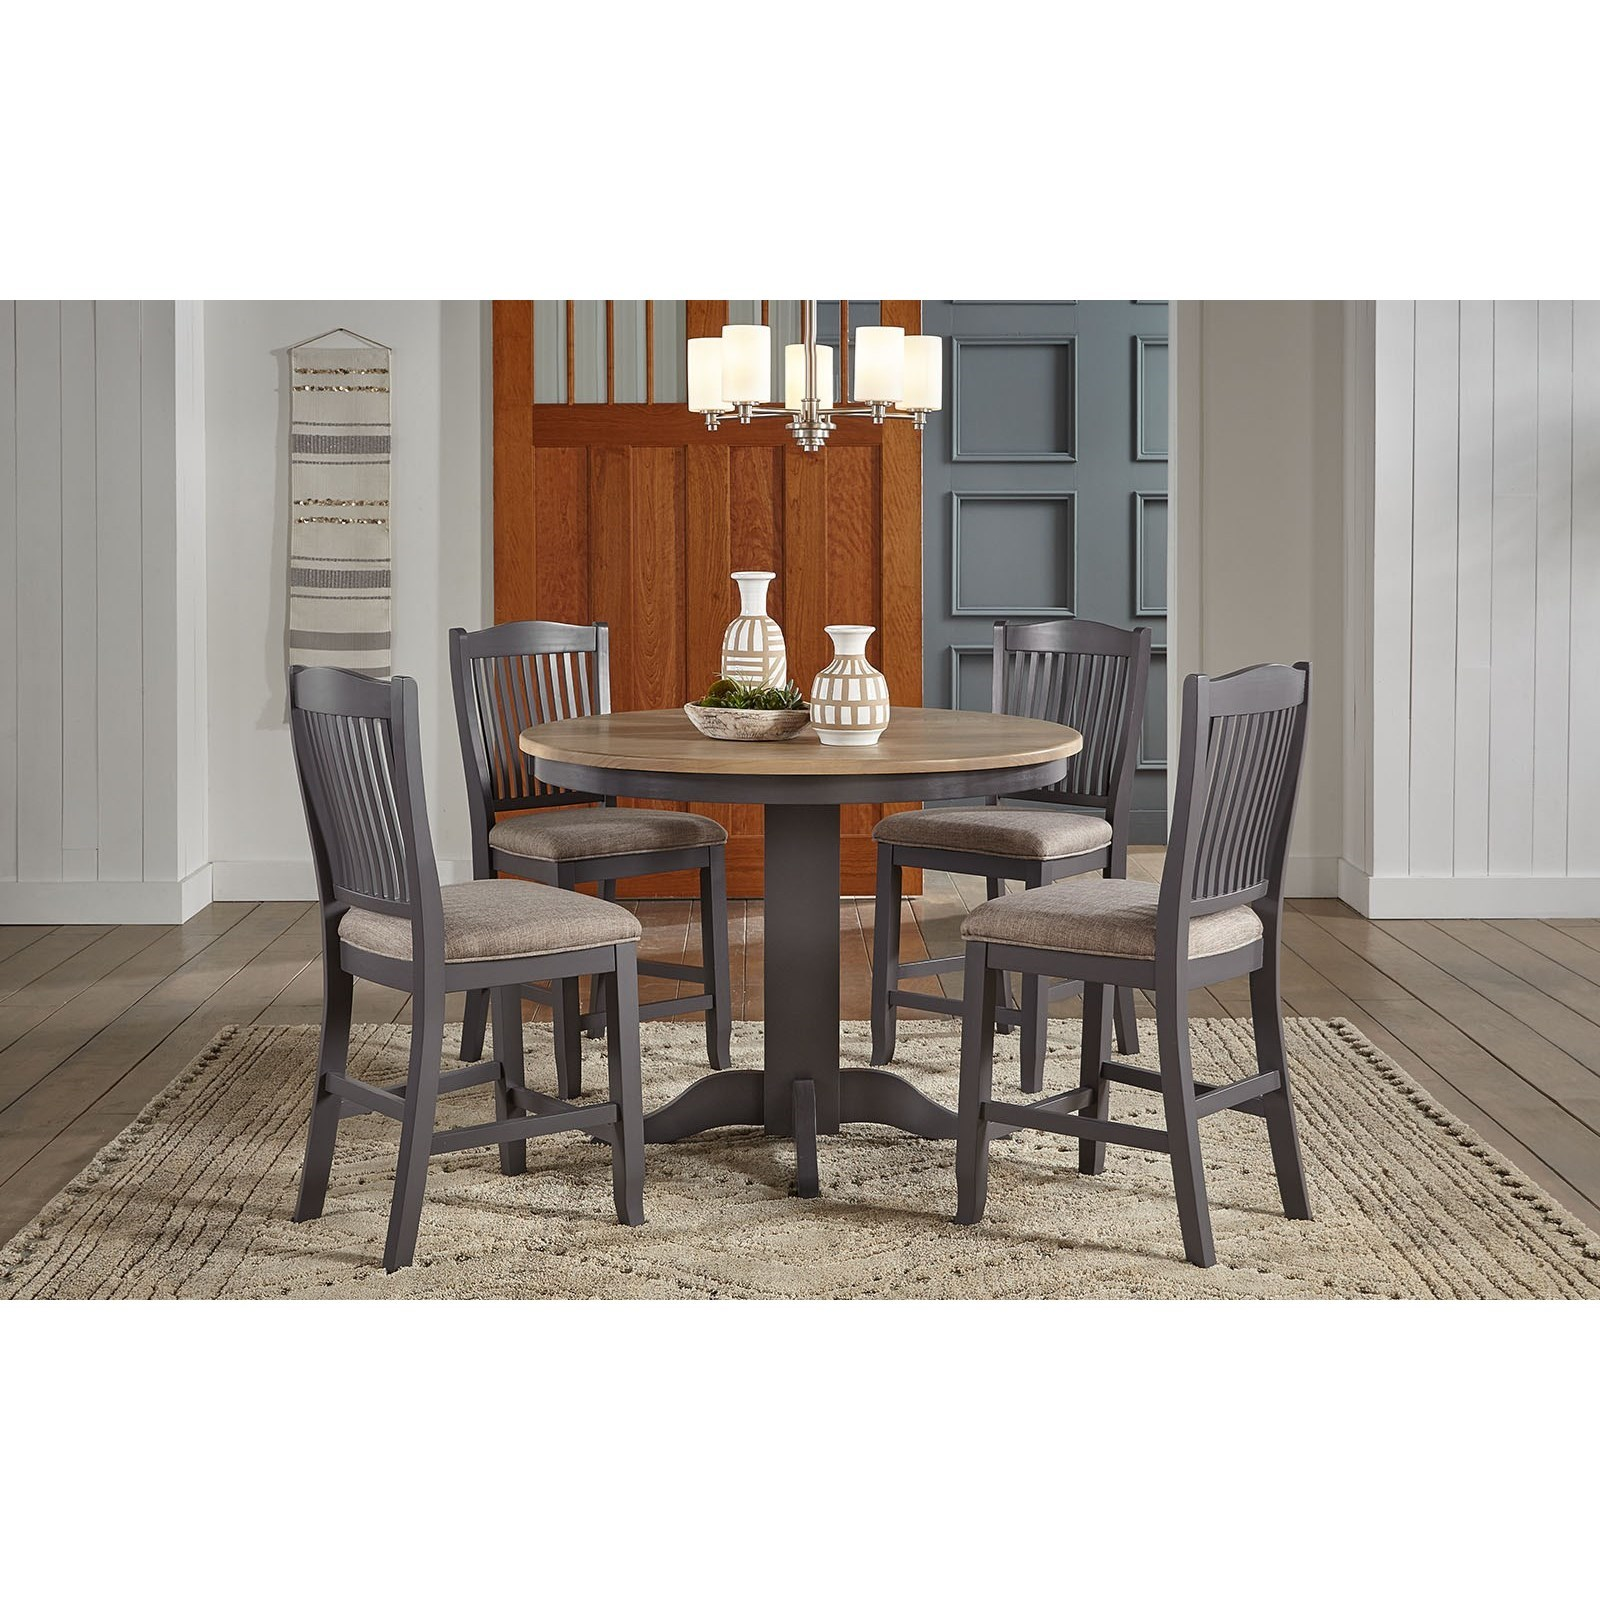 5-Piece Round Gathering Table and Chair Set